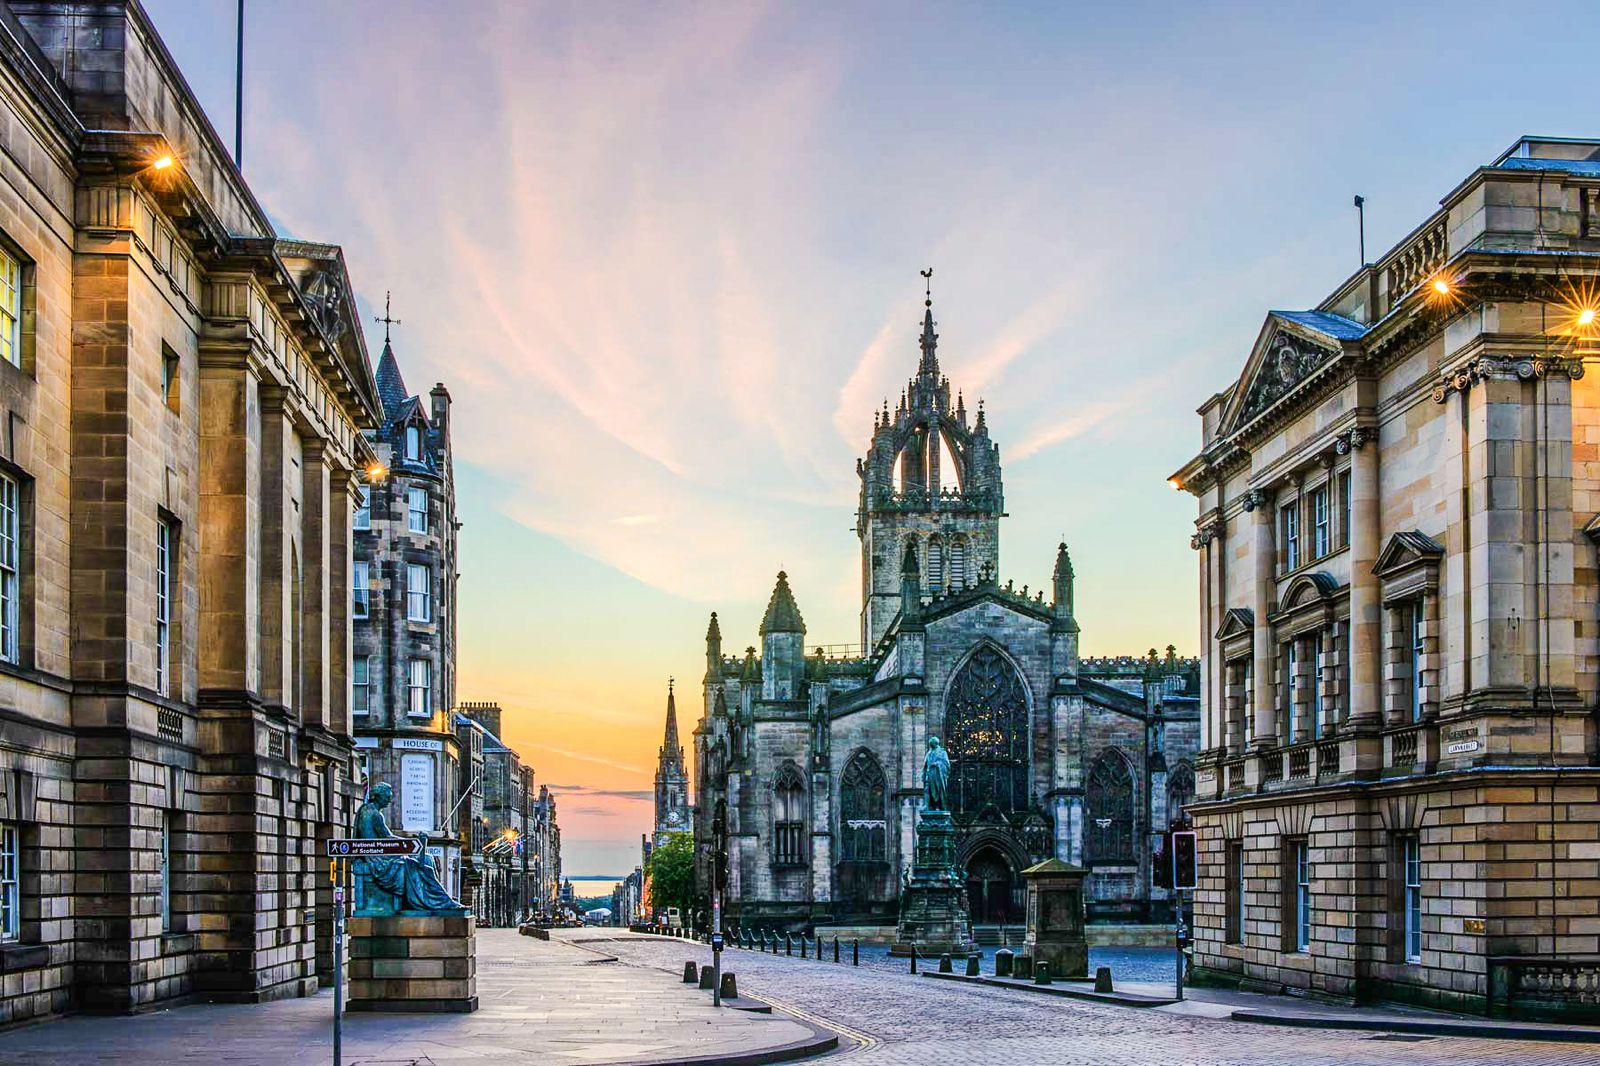 cheapest flights to edinburgh